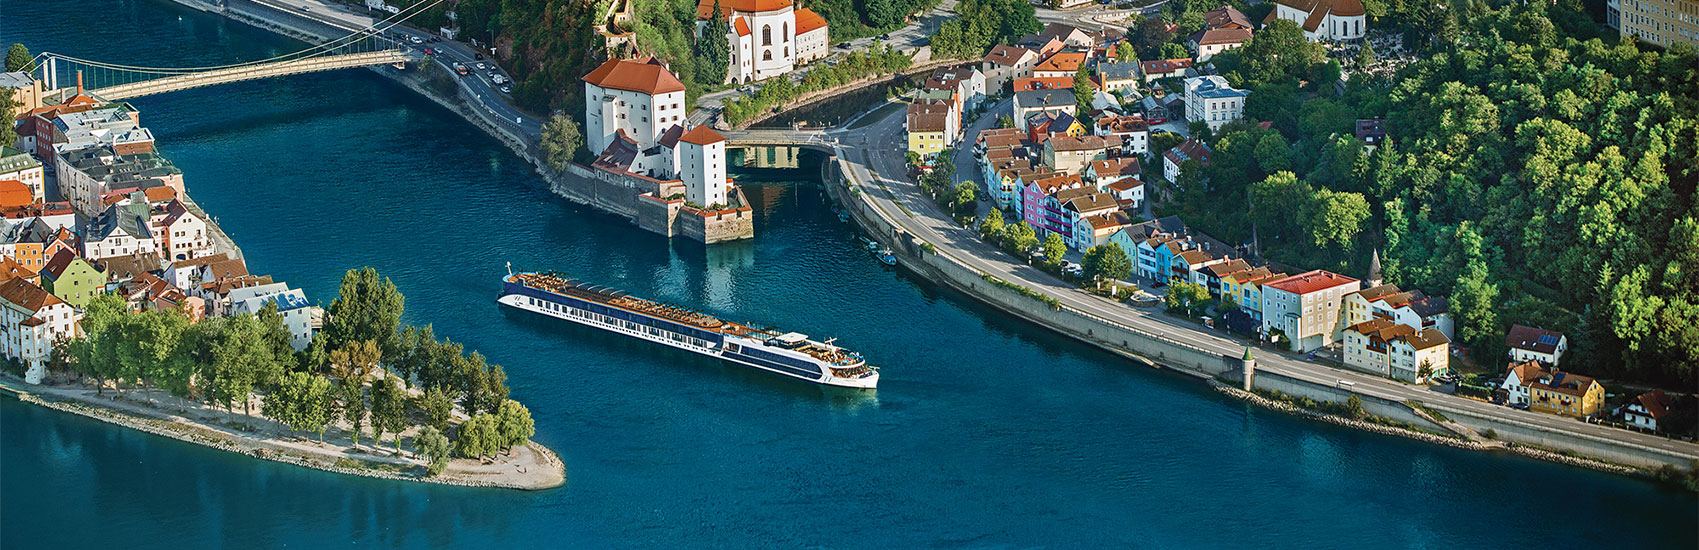 Europe River Cruise Savings with AmaWaterways